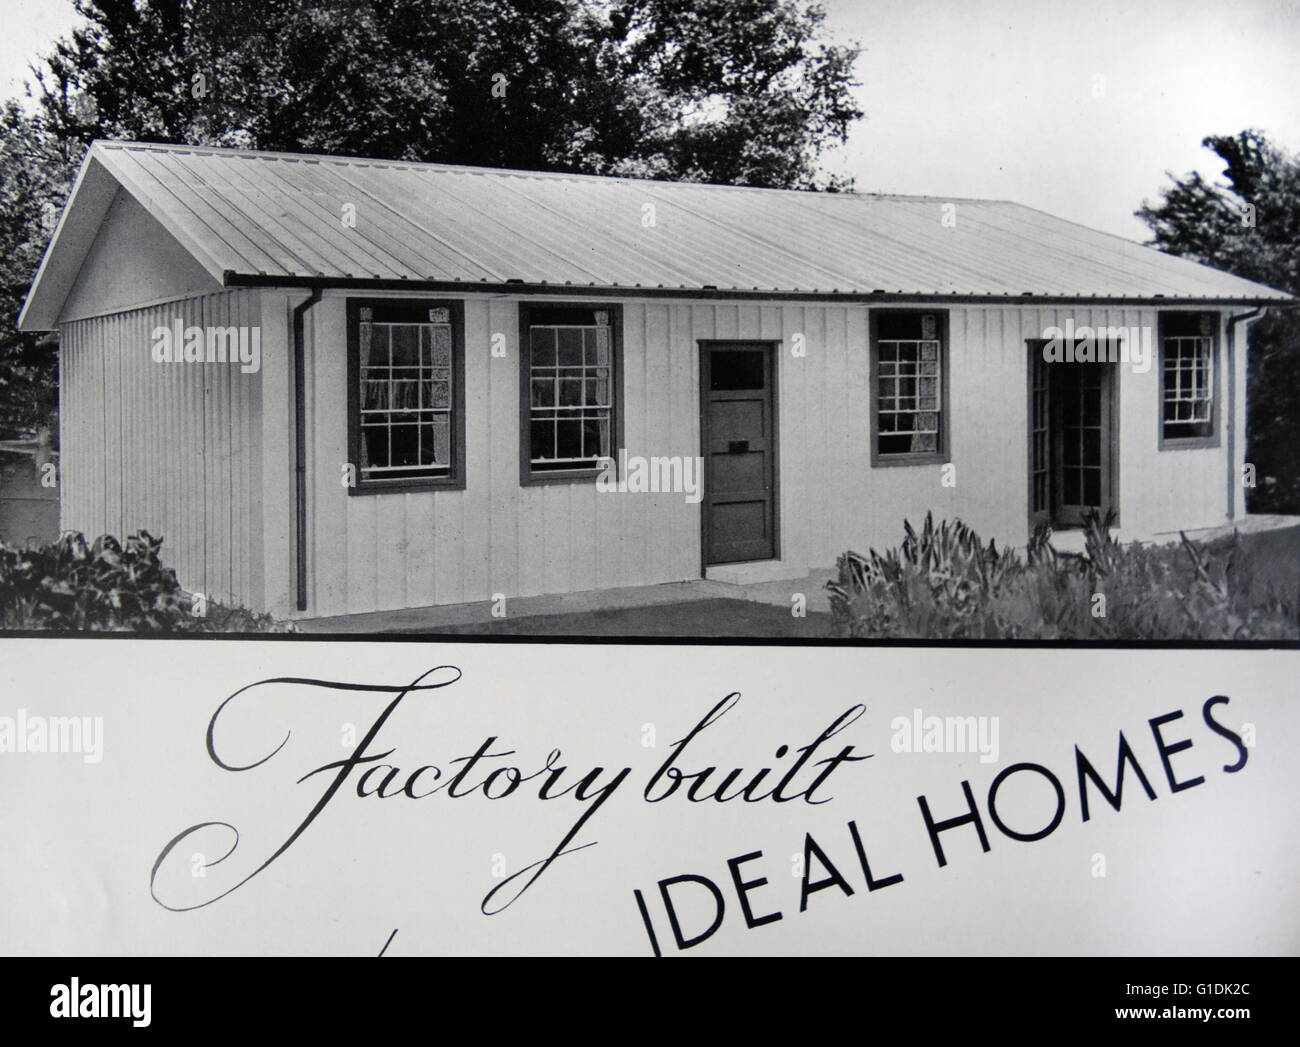 Example of factory built homes by A. W. Hawksley Ltd. - Stock Image